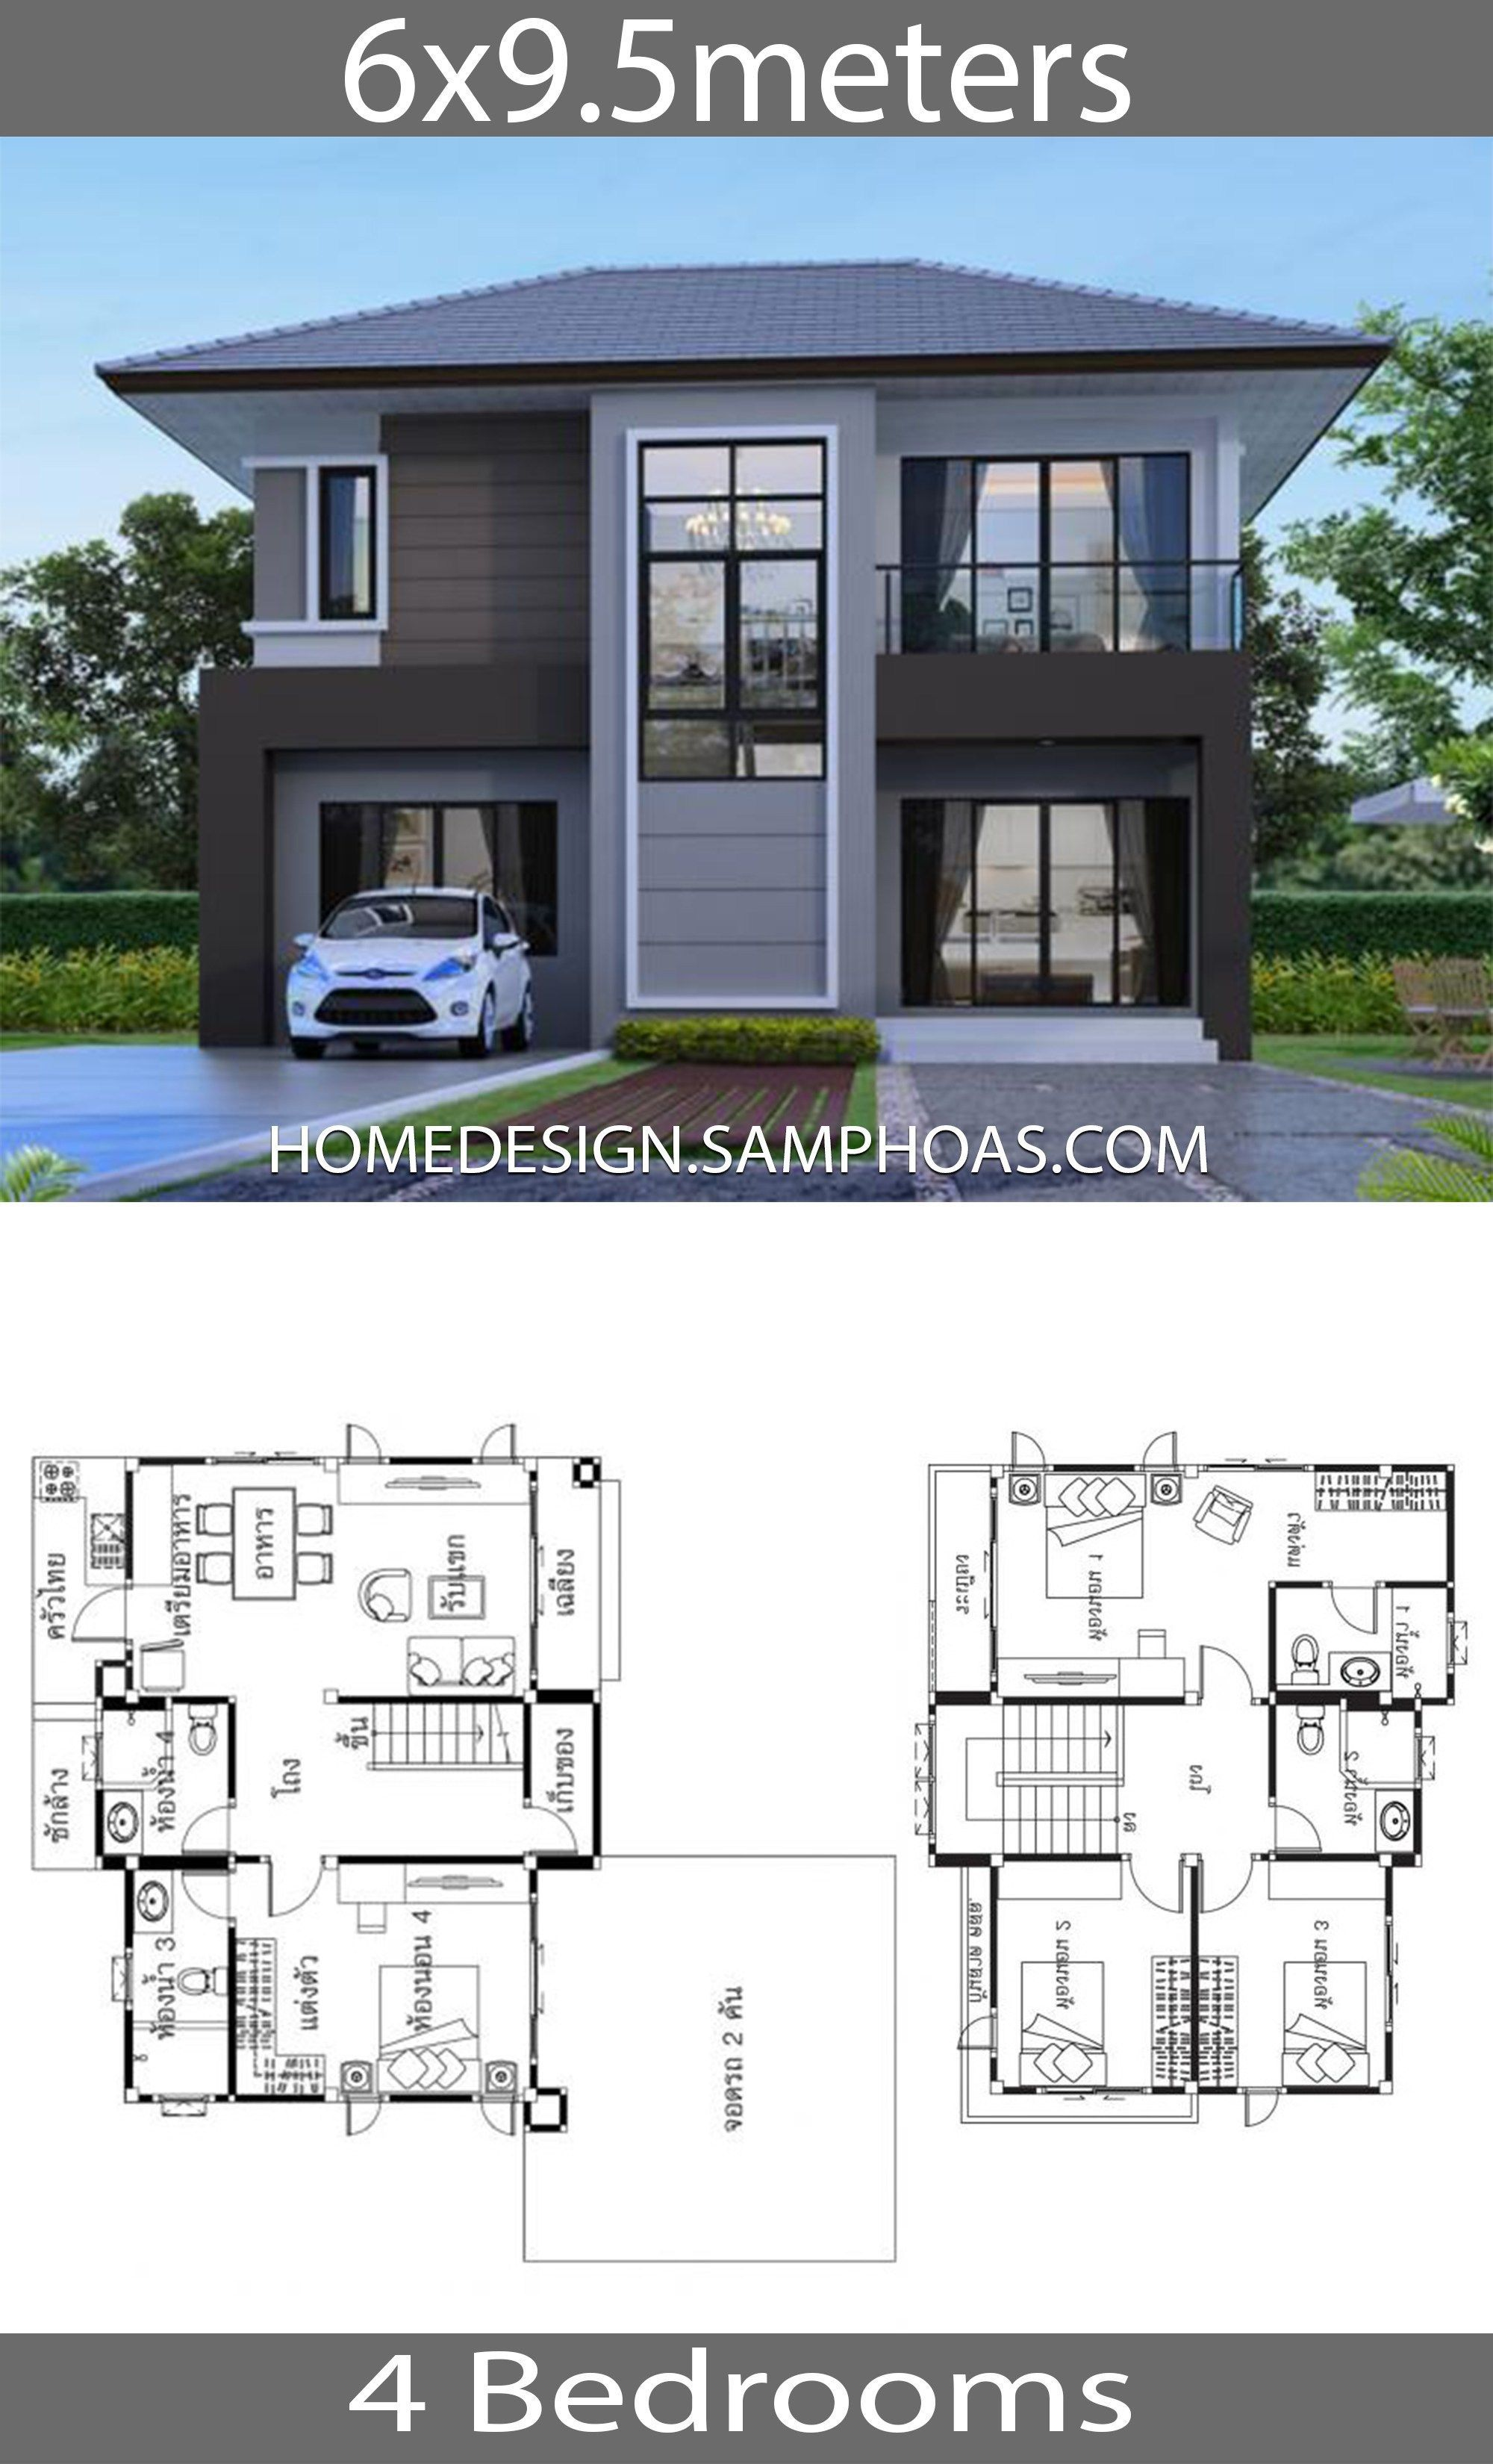 House Ideas 6x9 5m With 4 Bedrooms Home Ideas House Ideas 6x9 5m With 4 Bedroomshouse Des In 2020 With Images Pool House Designs Home Design Floor Plans House Plans Mansion